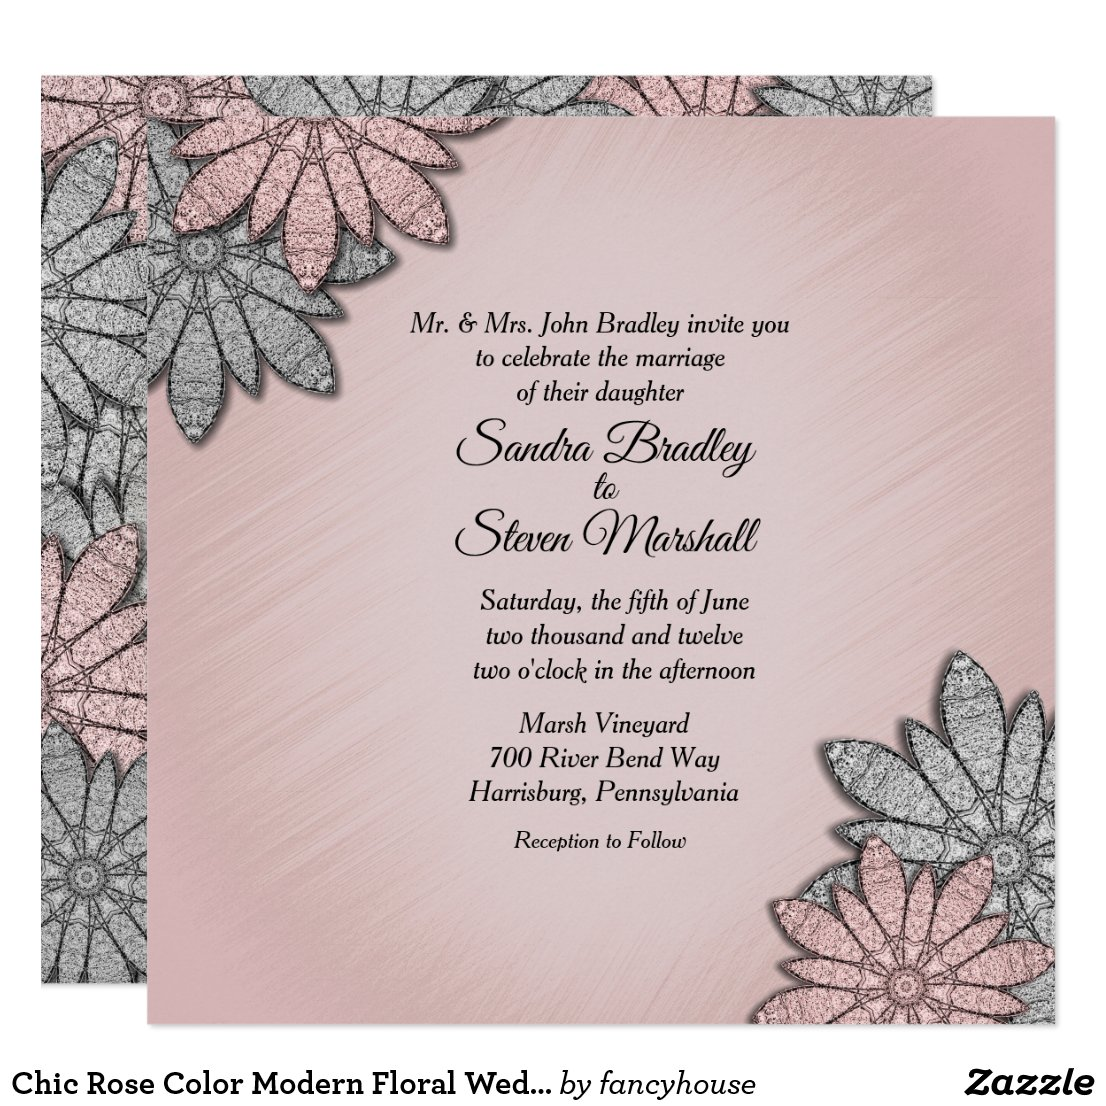 Chic Floral Wedding Invitation